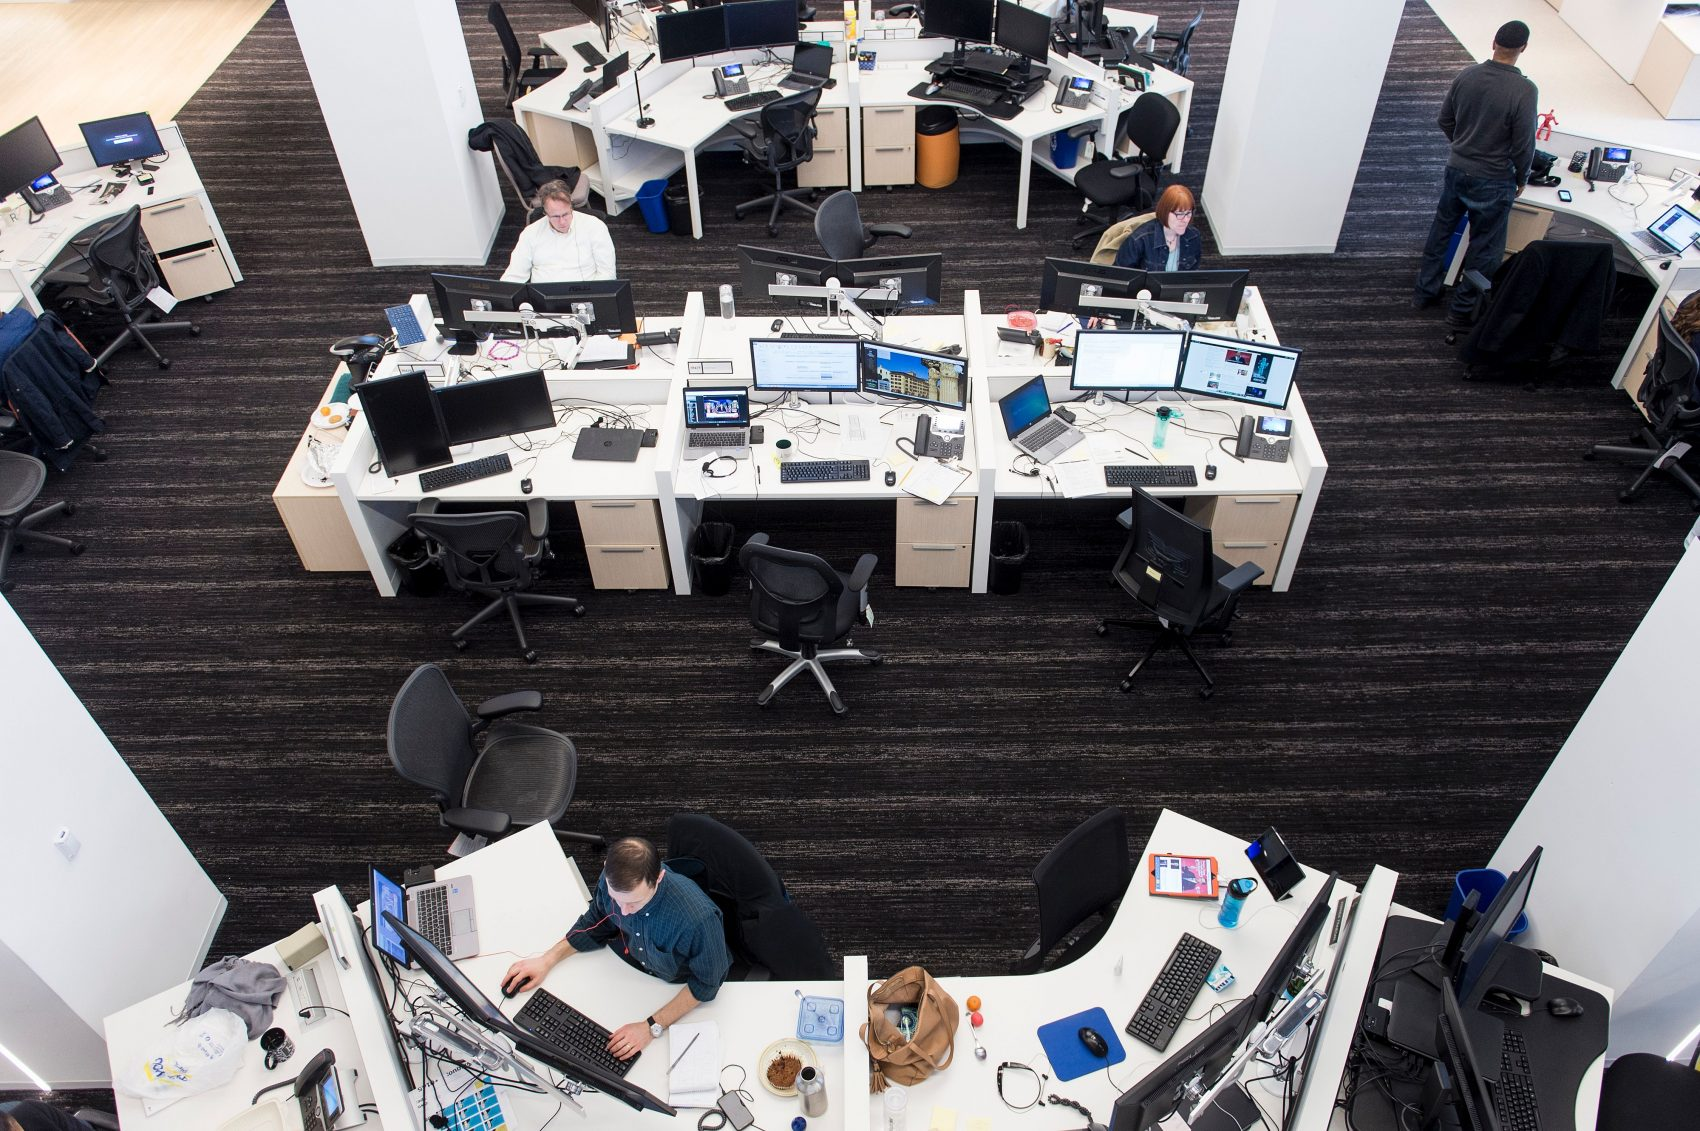 At the headquarters of the Washington Post, one journalist is using artificial intelligence to write the news. Pictured: The Post's newsroom in Washington, D.C. (Brendan Smialowski/AFP/Getty Images)